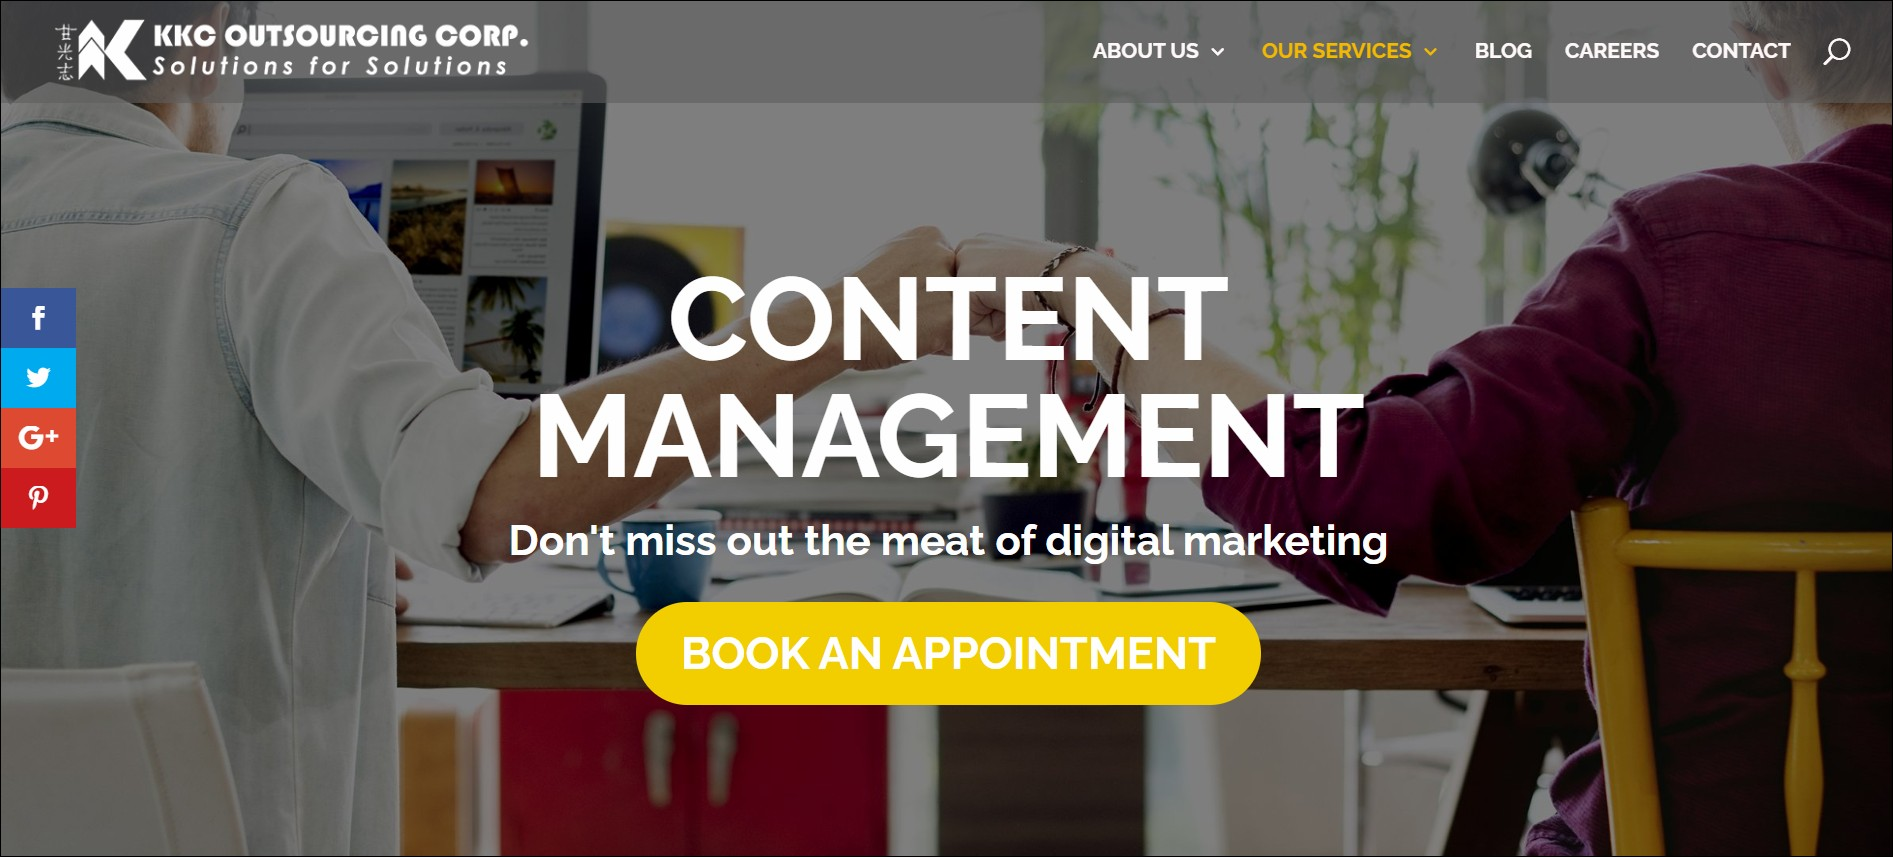 KKC Outsourcing Corporation: content marketing agencies in South East Asia